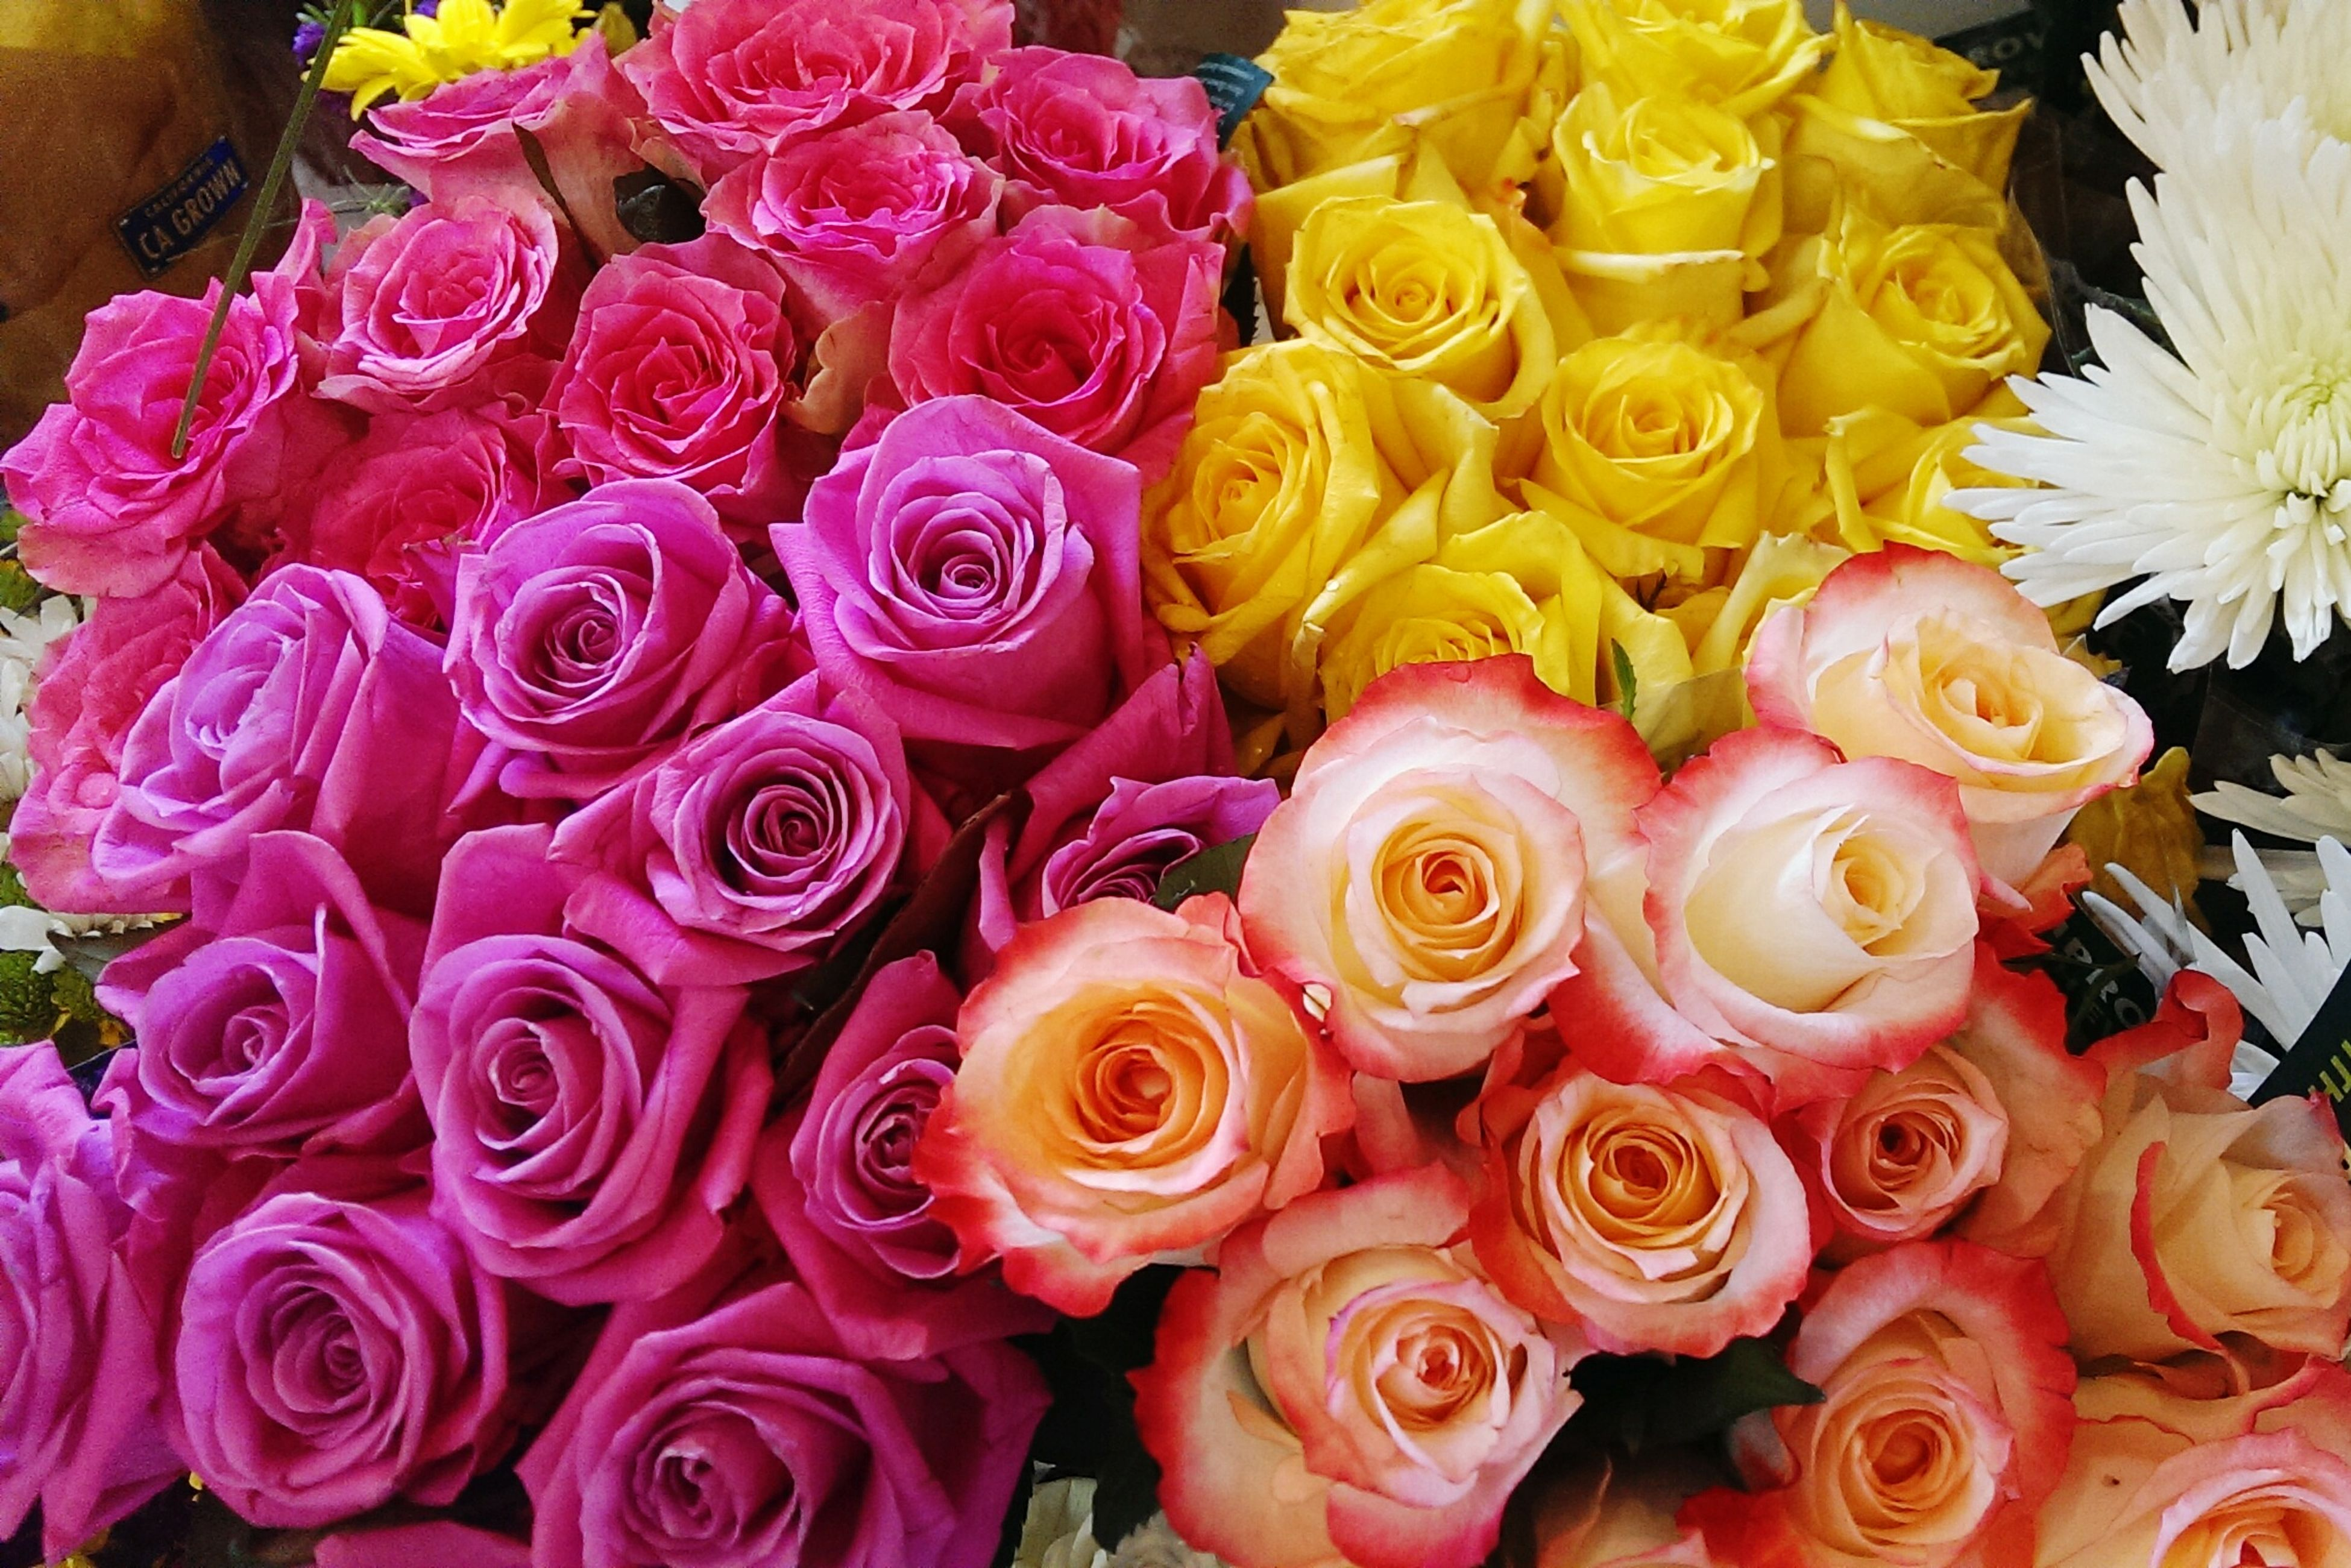 flower, freshness, petal, flower head, fragility, beauty in nature, full frame, bouquet, rose - flower, backgrounds, high angle view, bunch of flowers, abundance, nature, growth, blooming, close-up, indoors, multi colored, yellow